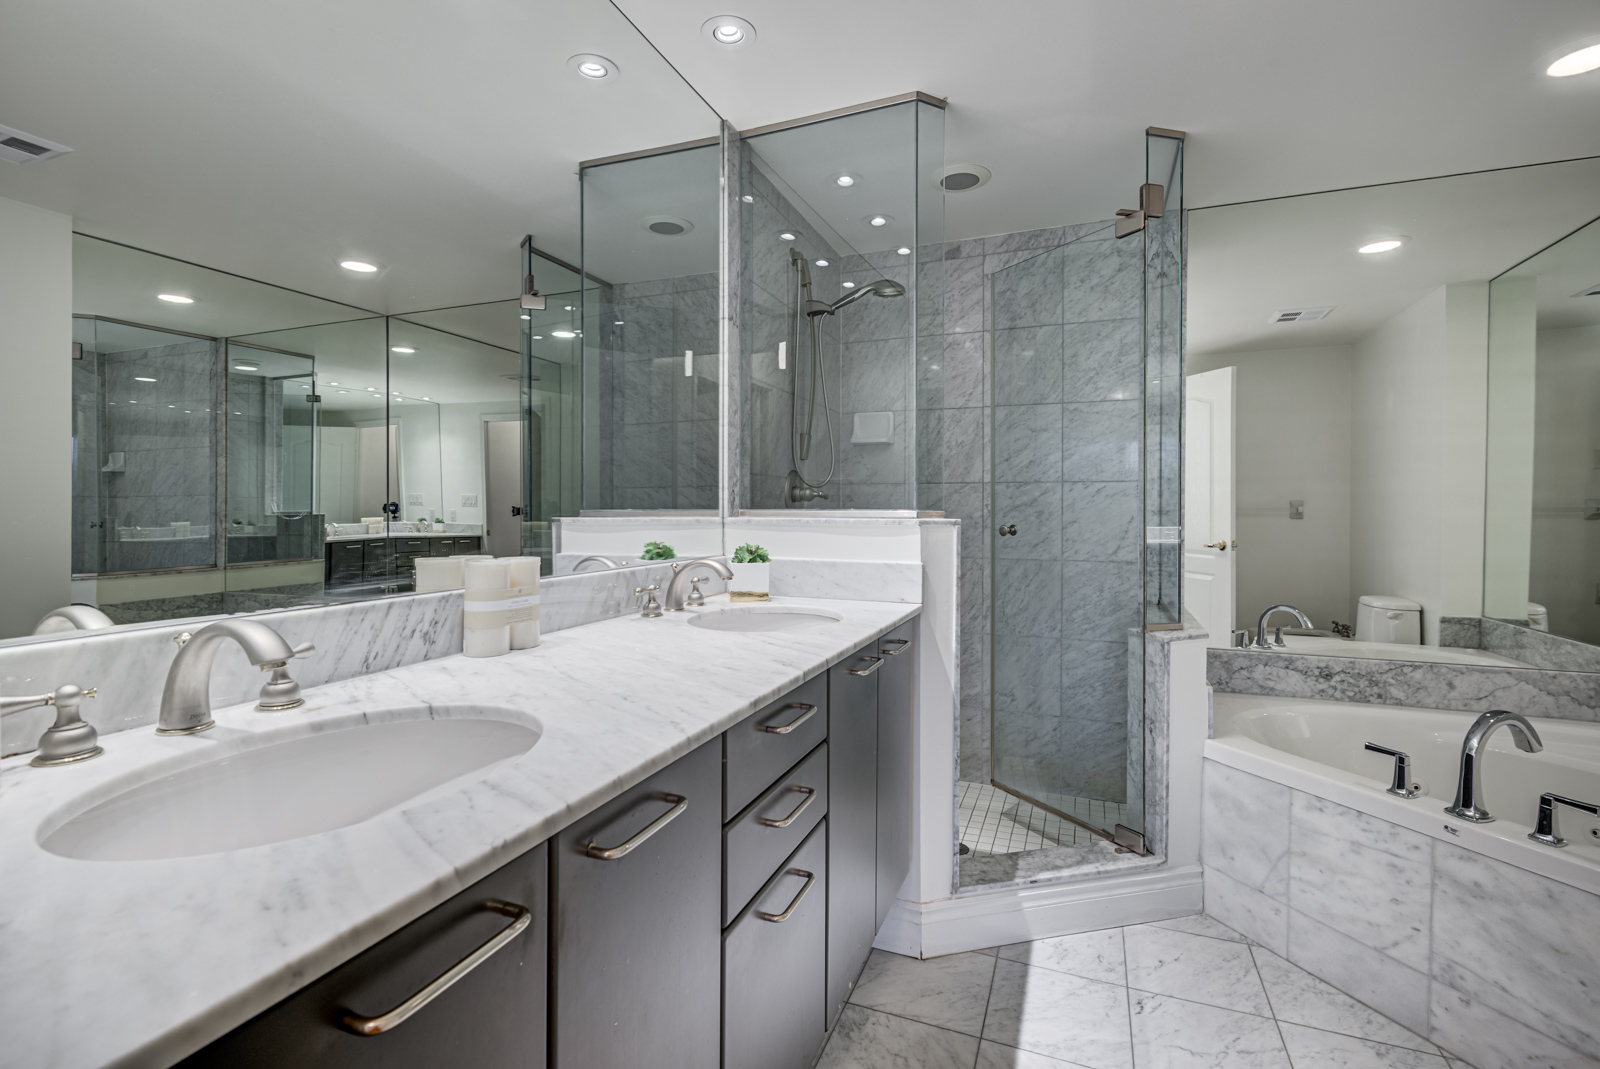 Gorgeous master bath with marble tiles, tub, 2 sinks, walk-in shower of 77 Mcmurrich St Unit 308.